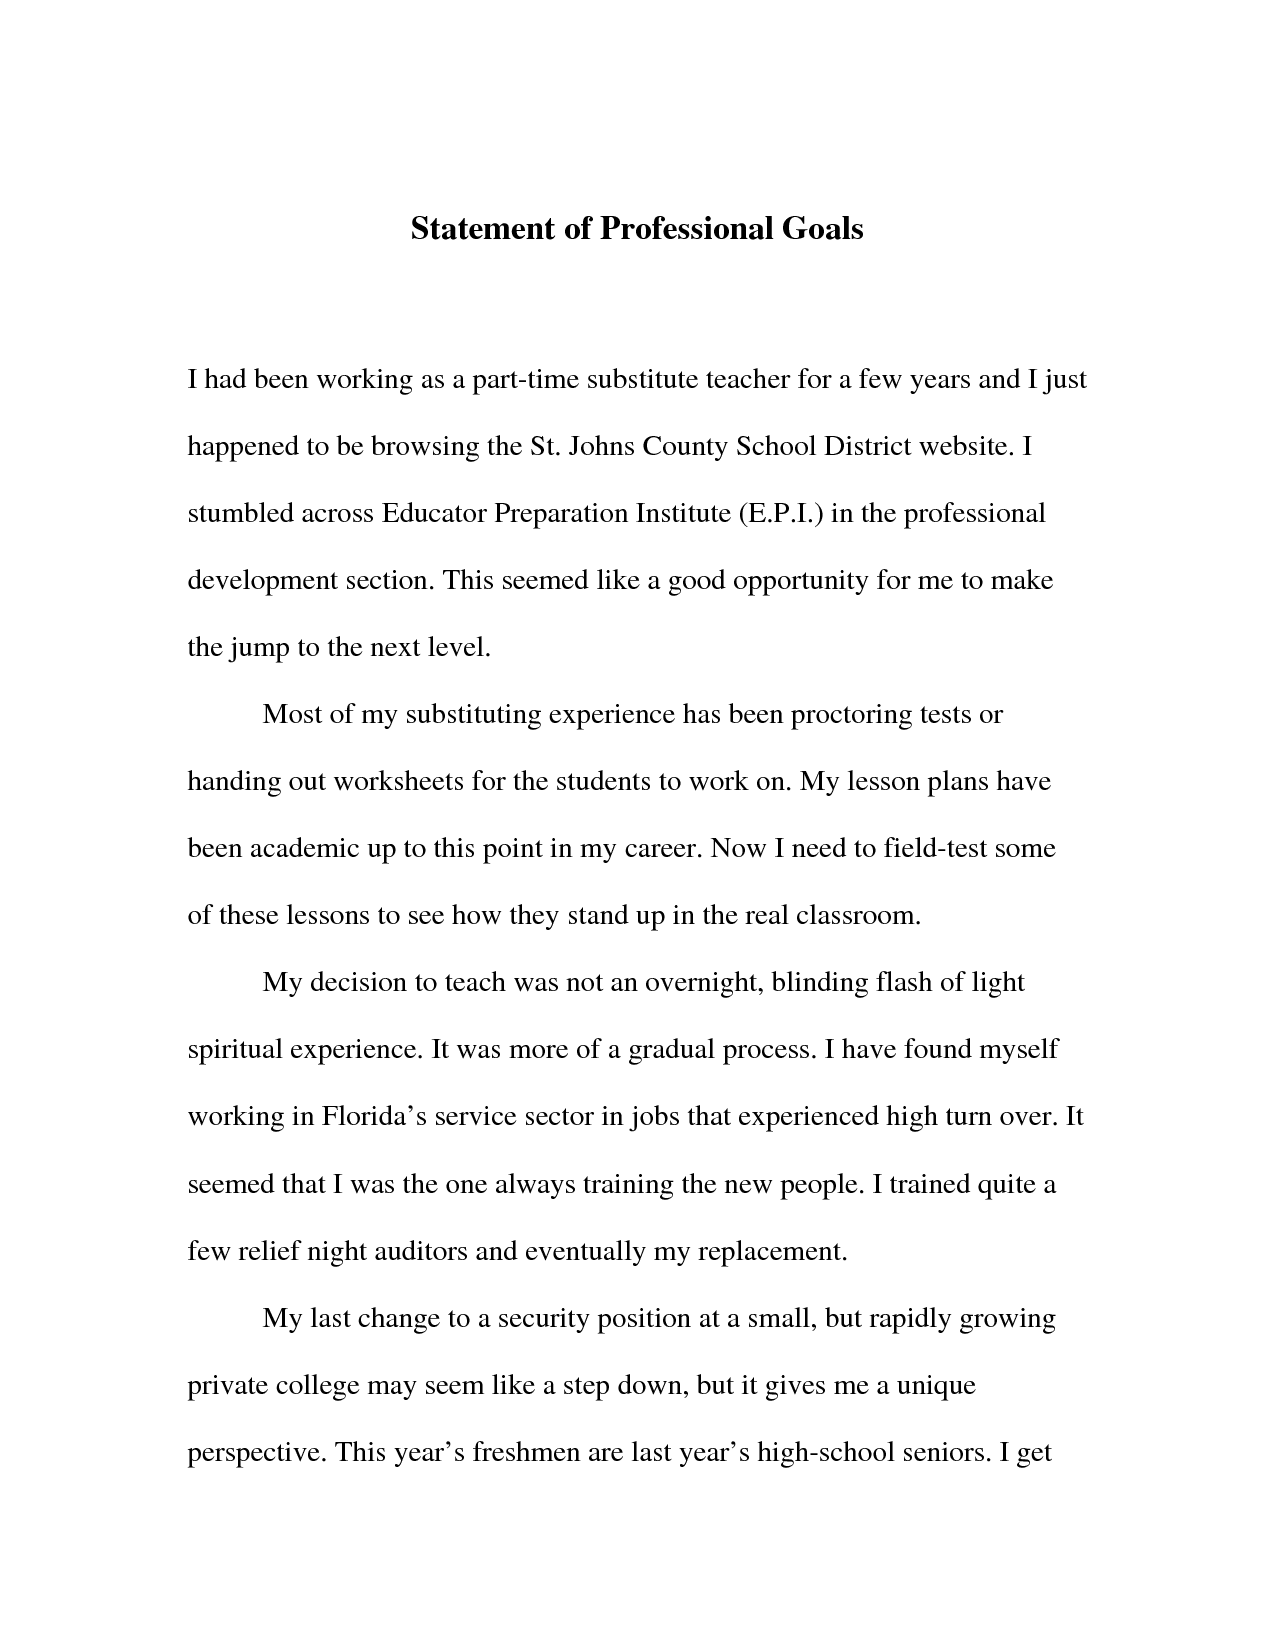 016 Professional Goals Statement Letter Sample 653144 Essay Example Vcu Remarkable Personal Full